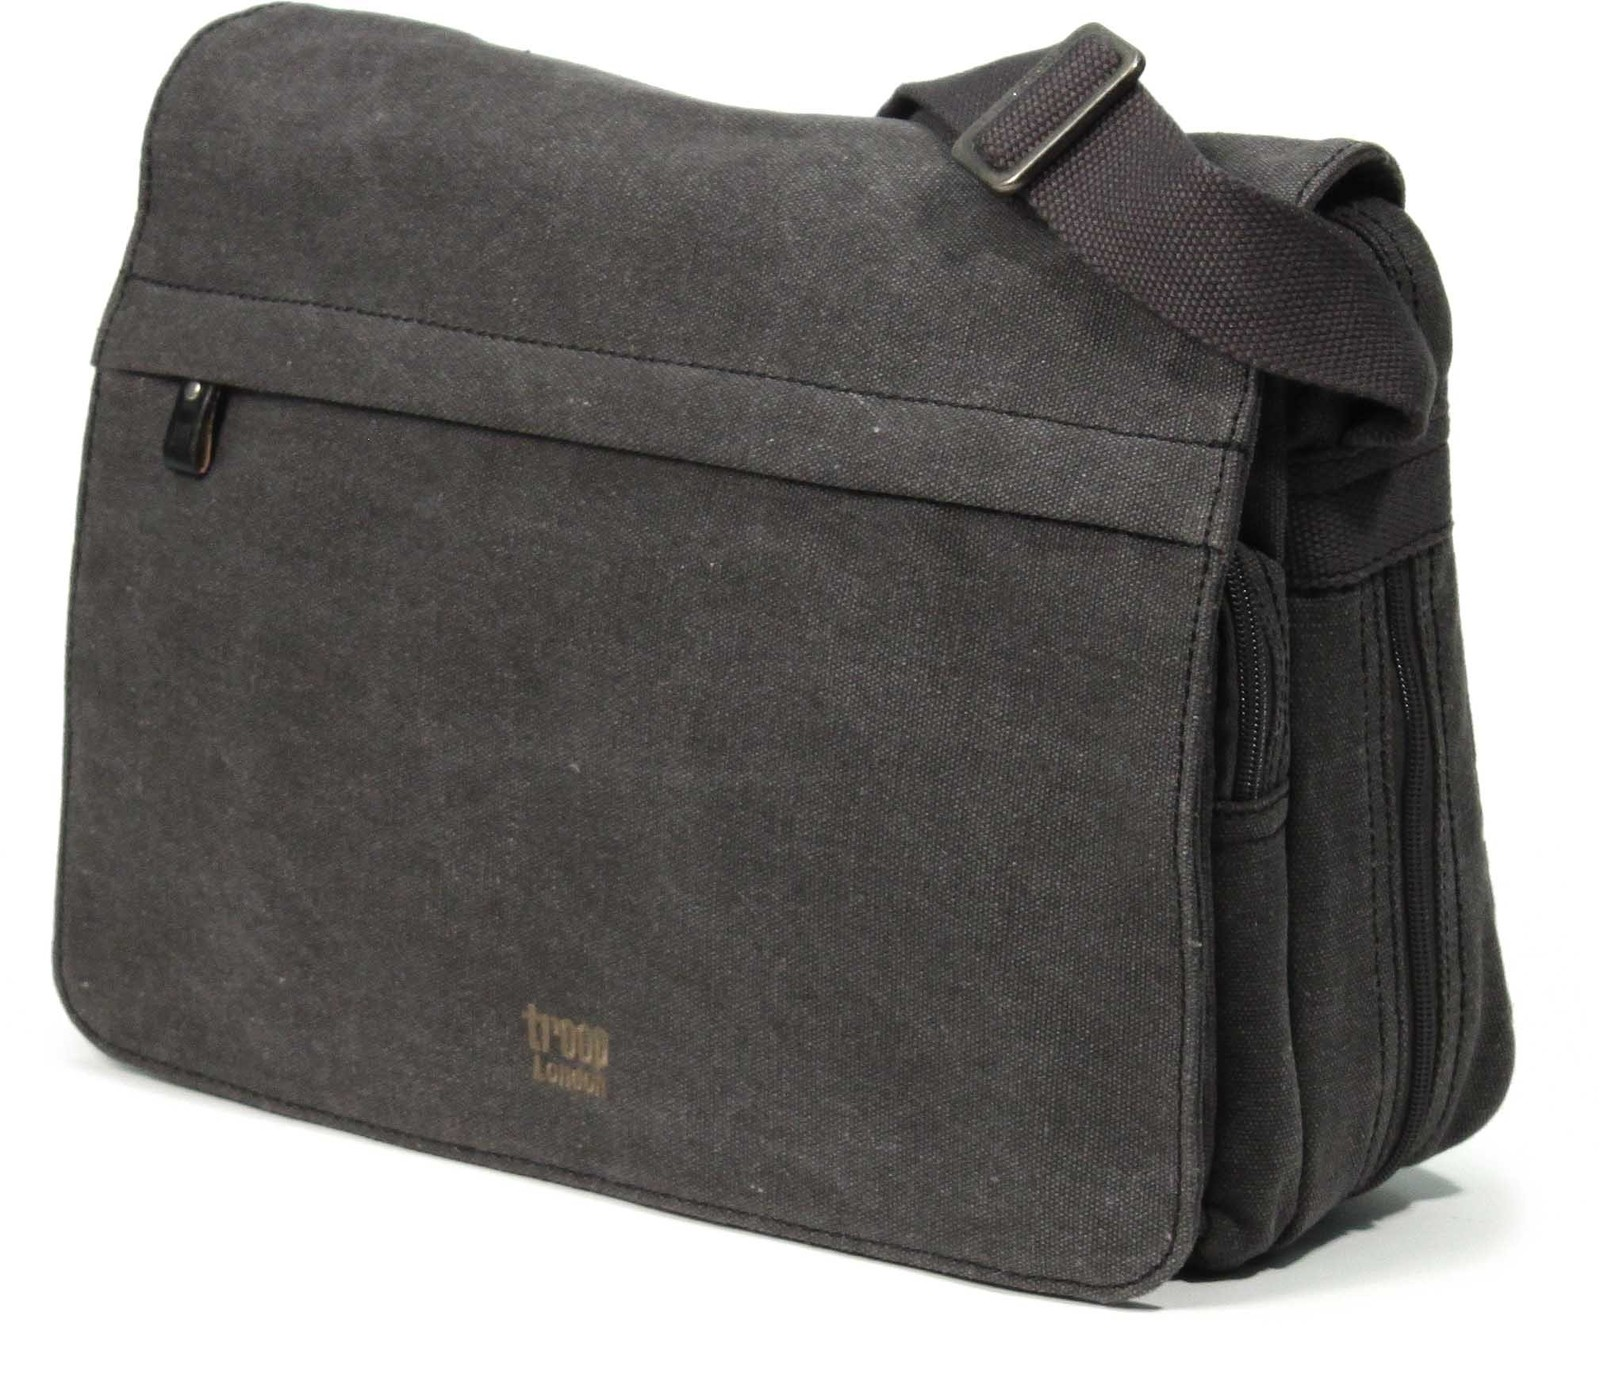 Troop London: Classic Flap Front Messenger Bag - Black image